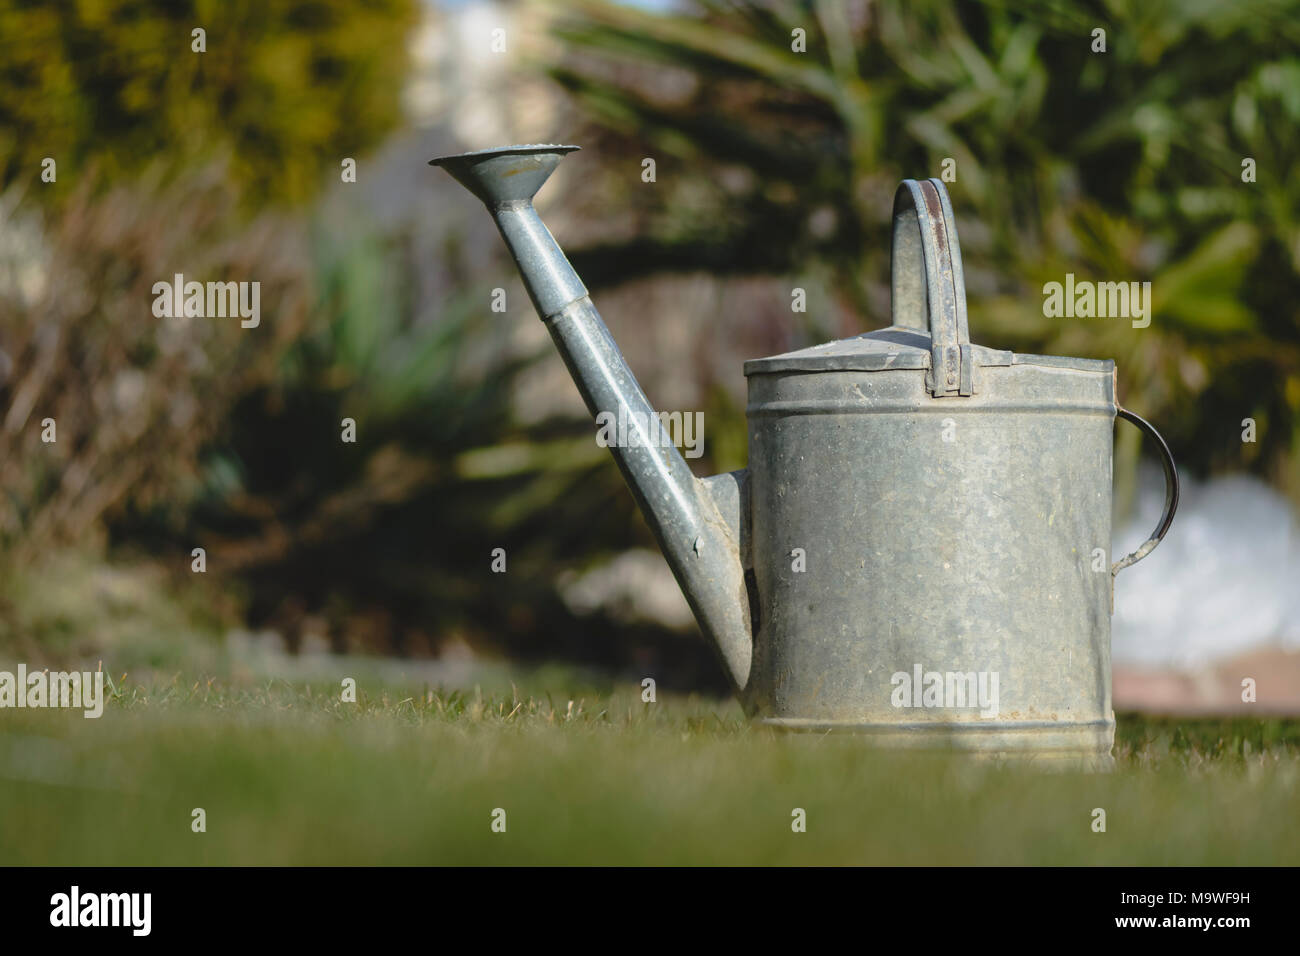 Watering can in a garden against  blurry background - Stock Image